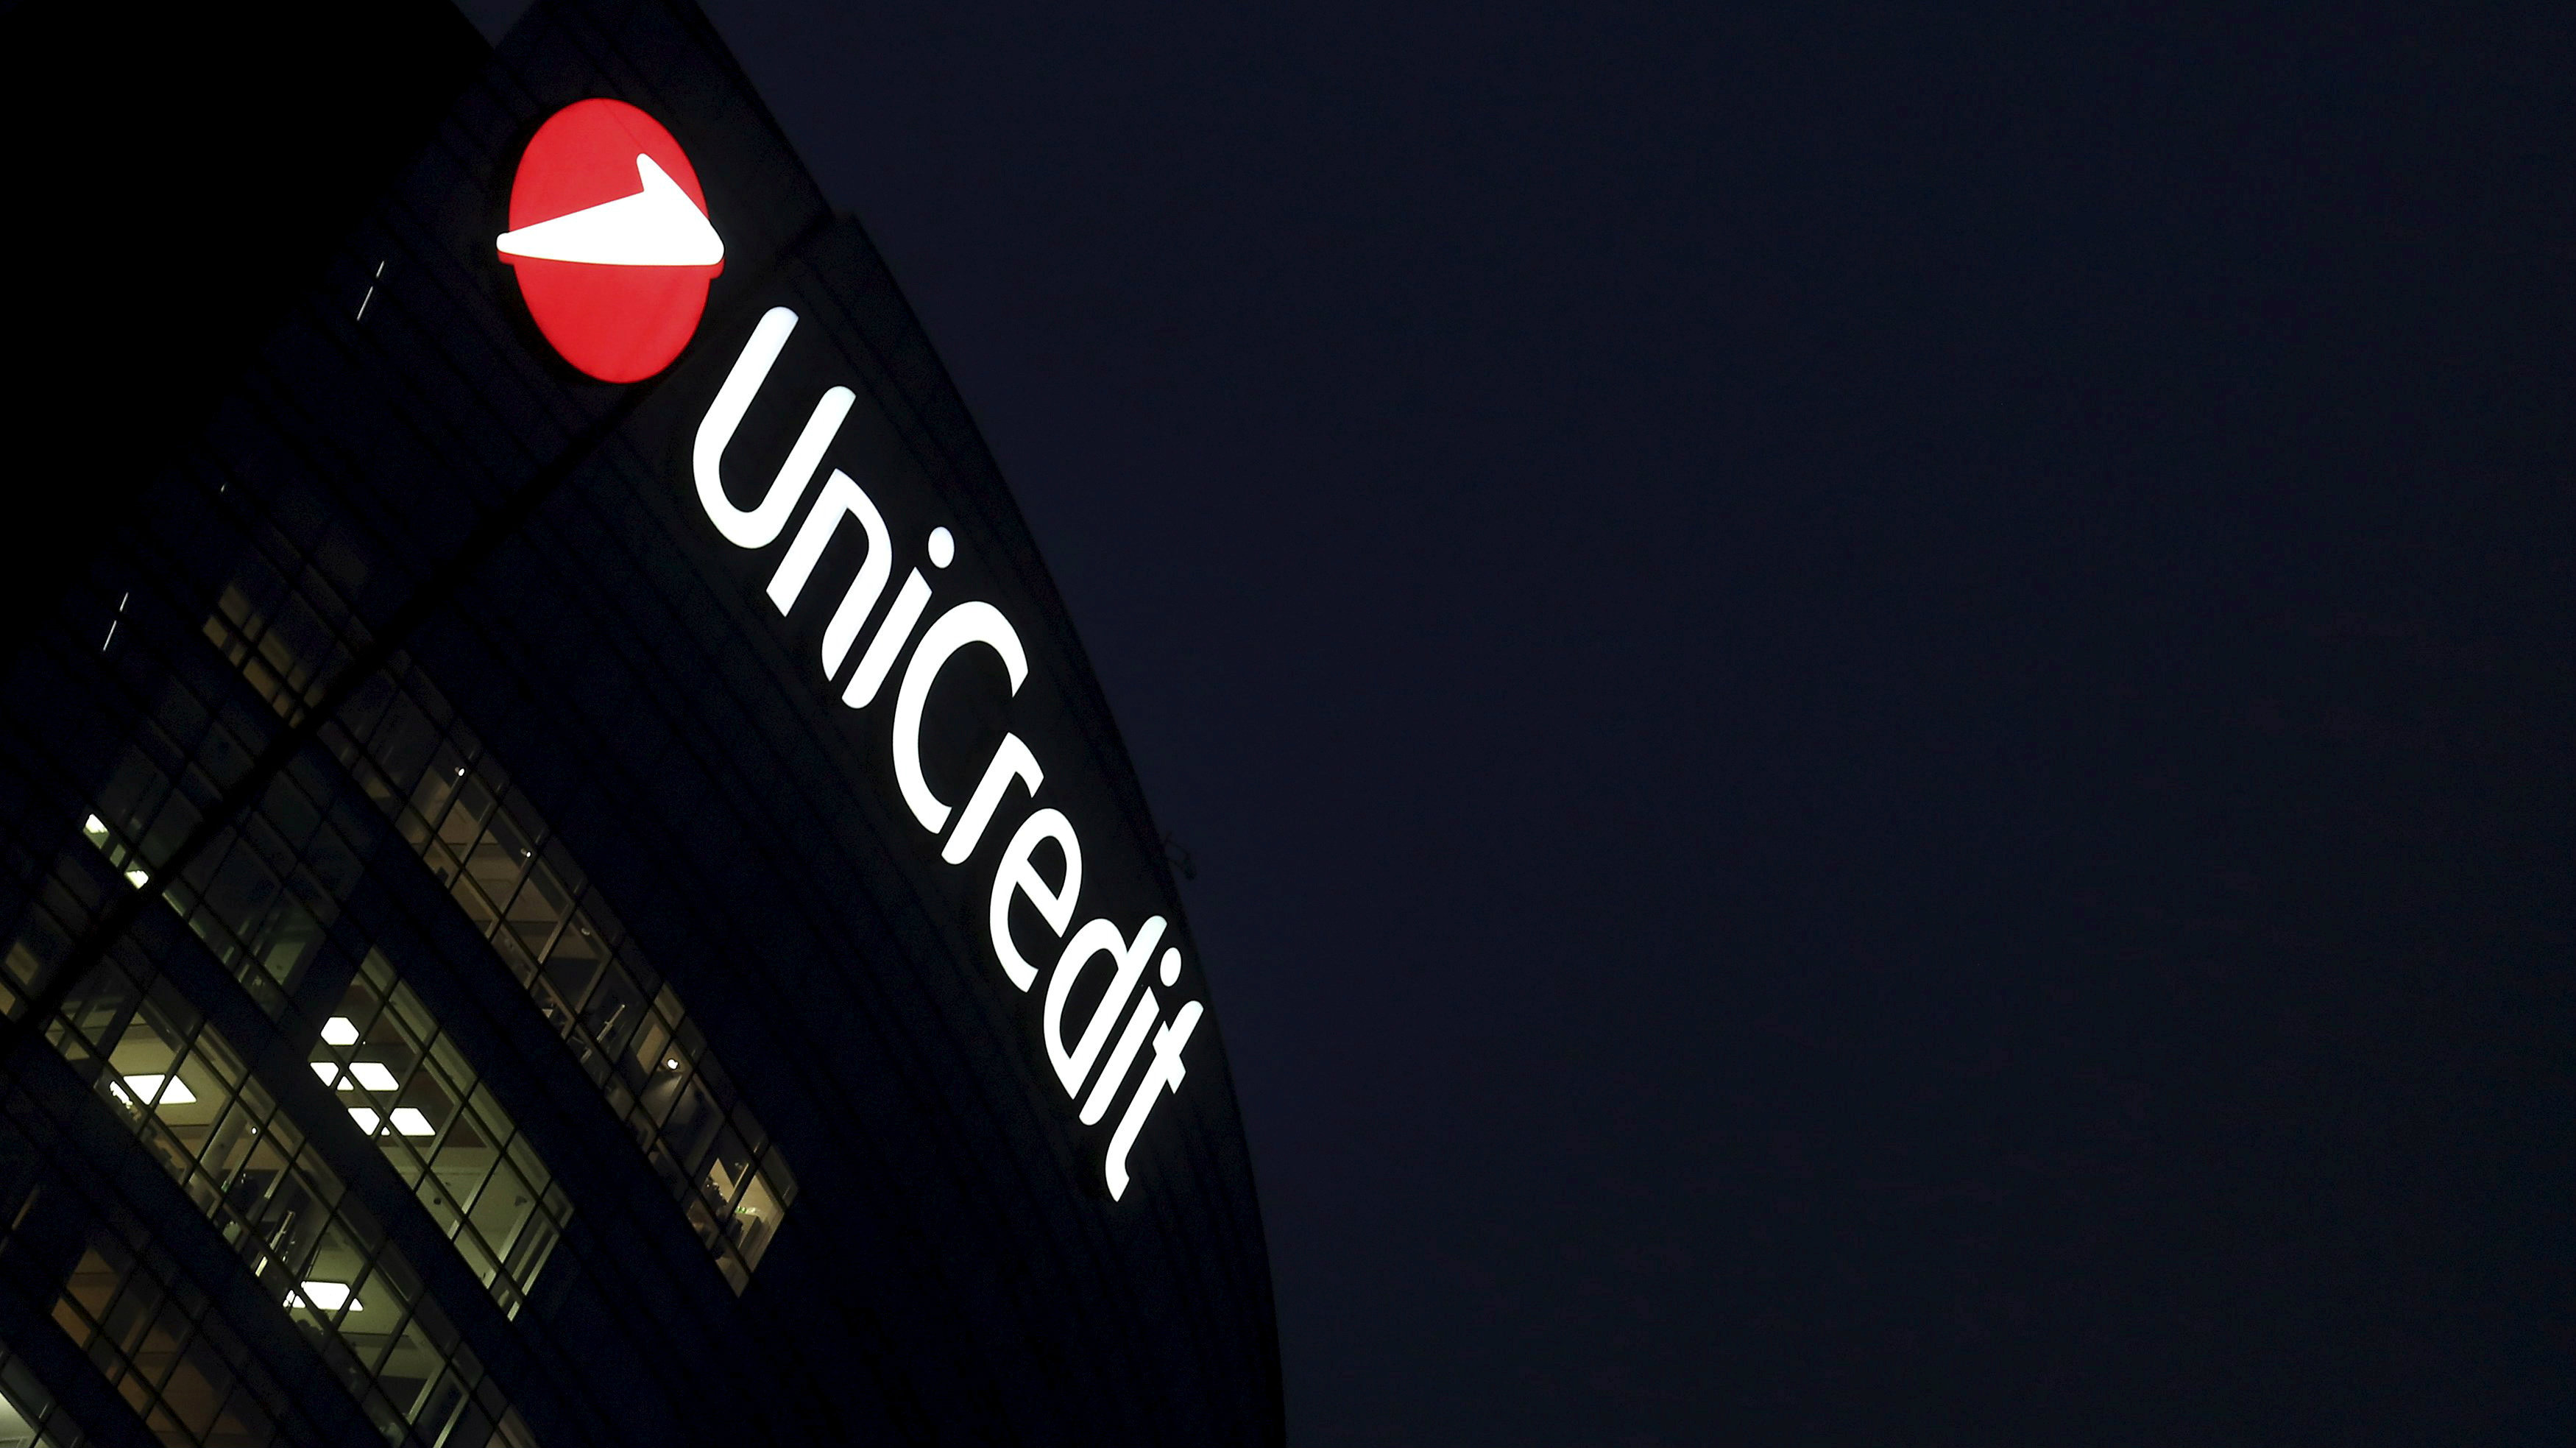 UniCredit building at night in Milan